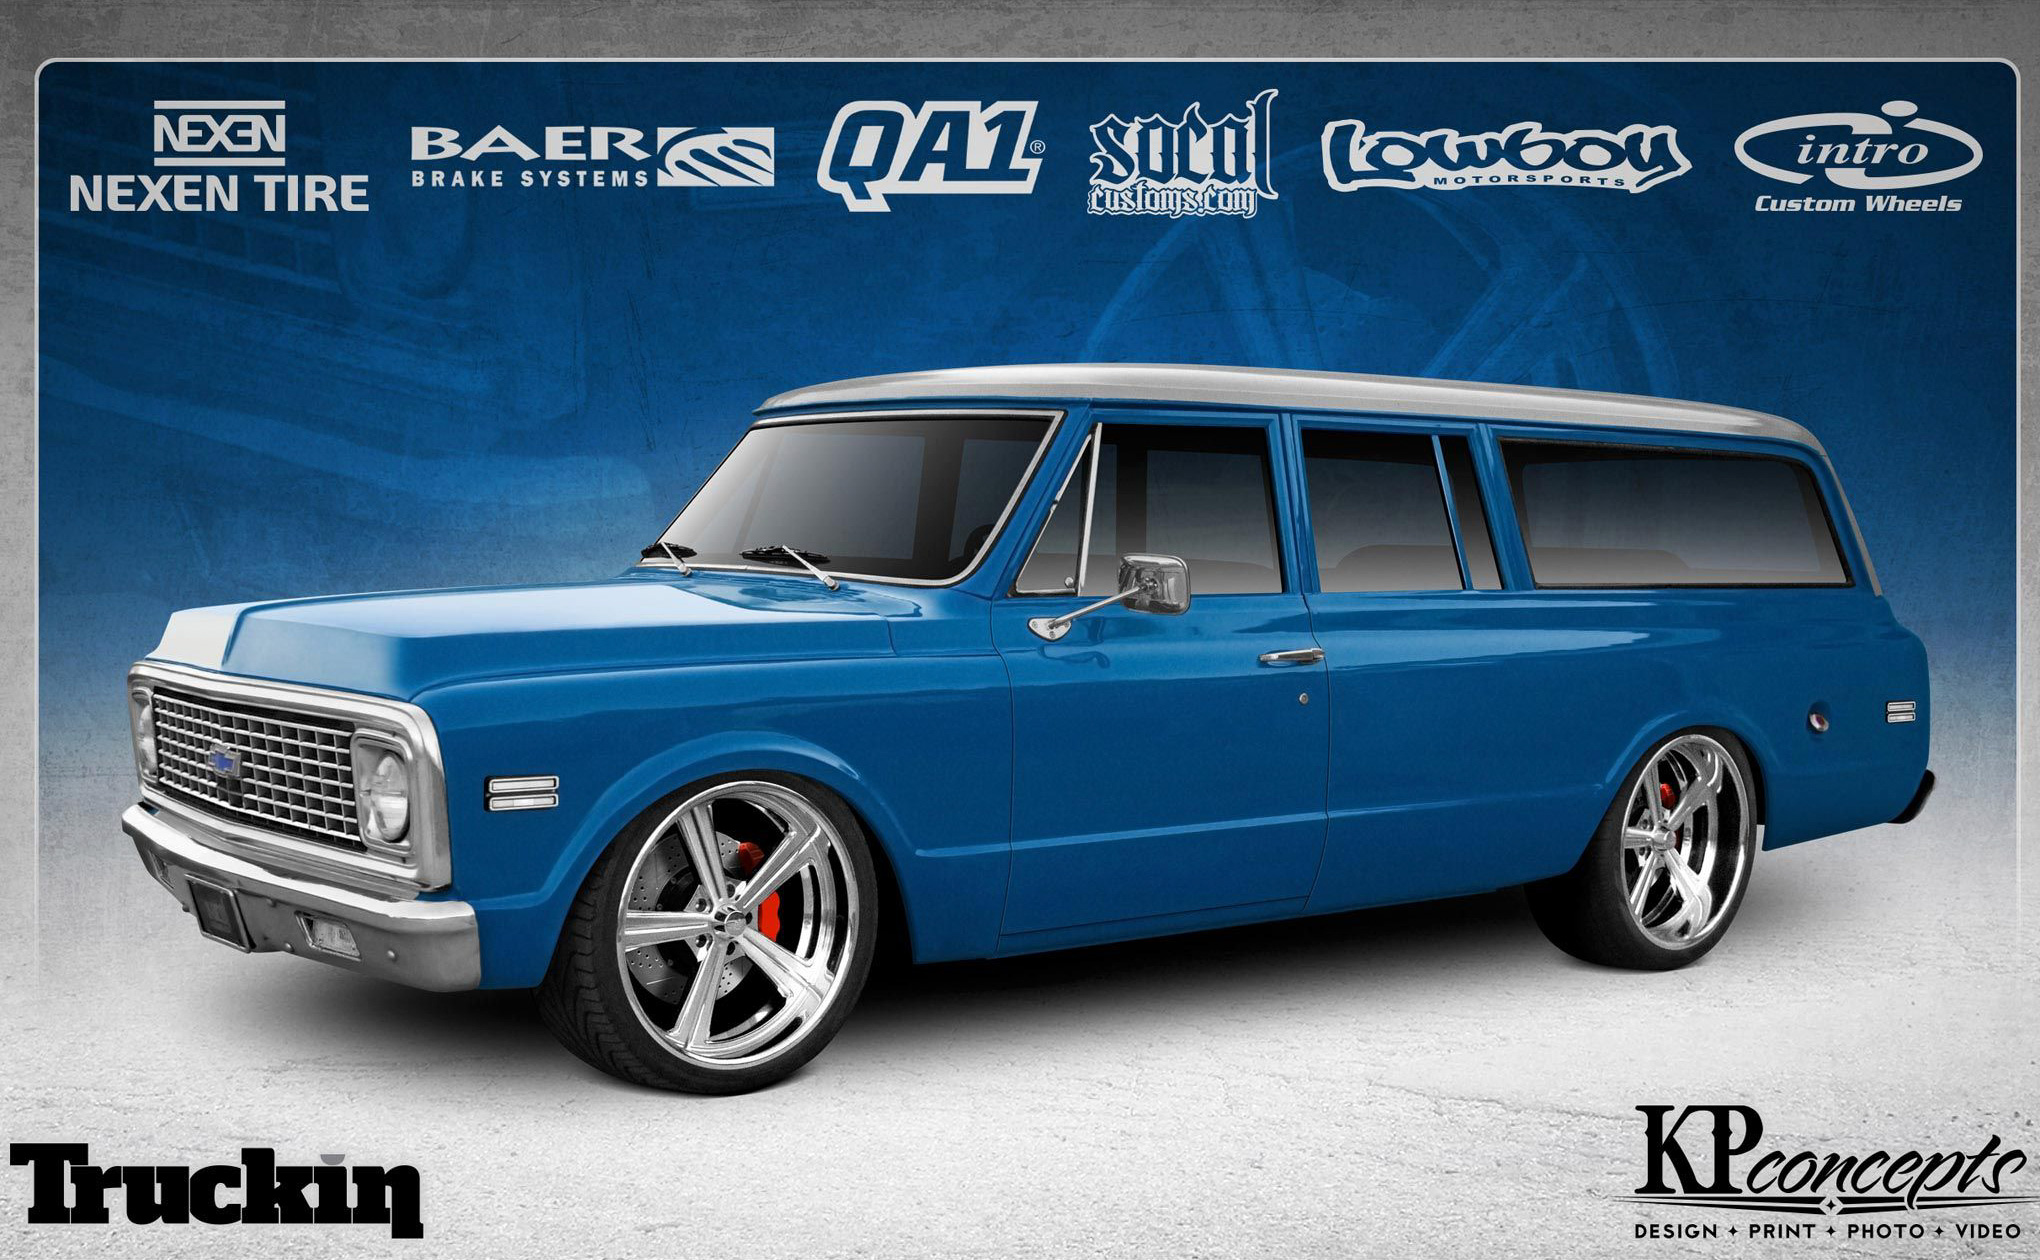 radical-renderings-kp-concepts-1971-chevrolet-suburban